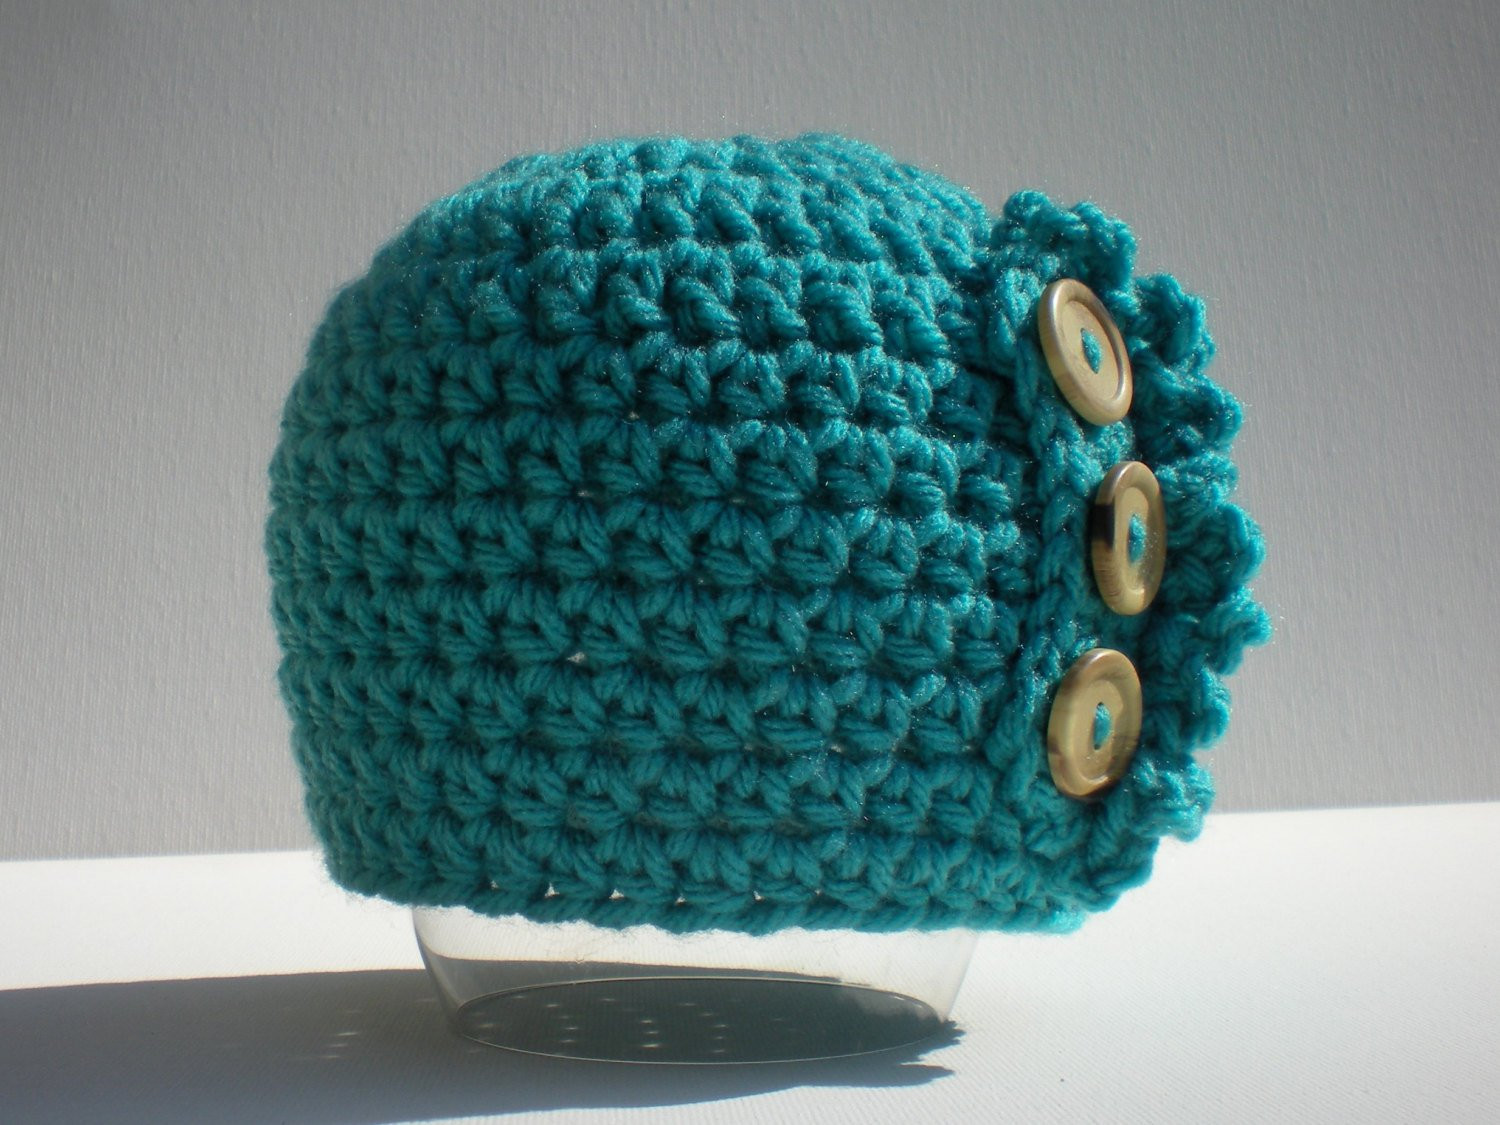 Easy Crochet Hat Patterns Inspirational Pattern Ruffle Baby Hat Easy Crochet Pdf Sizes Newborn to Of Innovative 46 Pictures Easy Crochet Hat Patterns